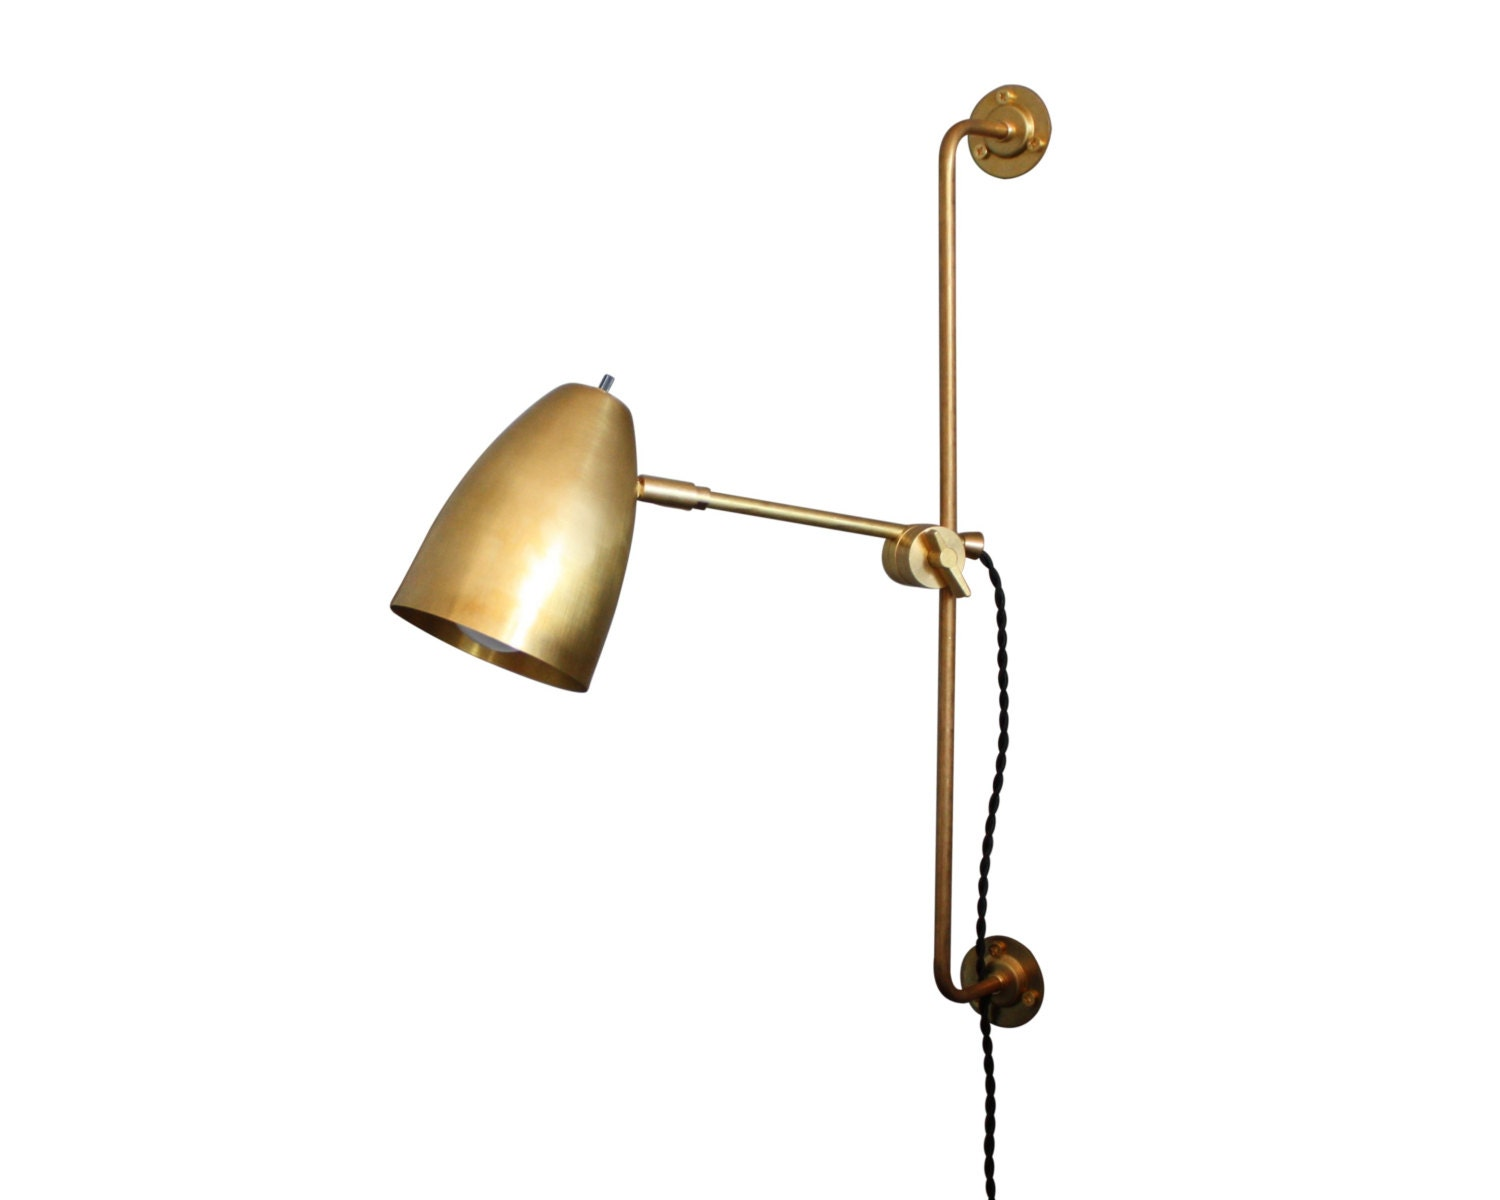 Articulating Brass Lamp Irwin Task Sconce Plug In Wall